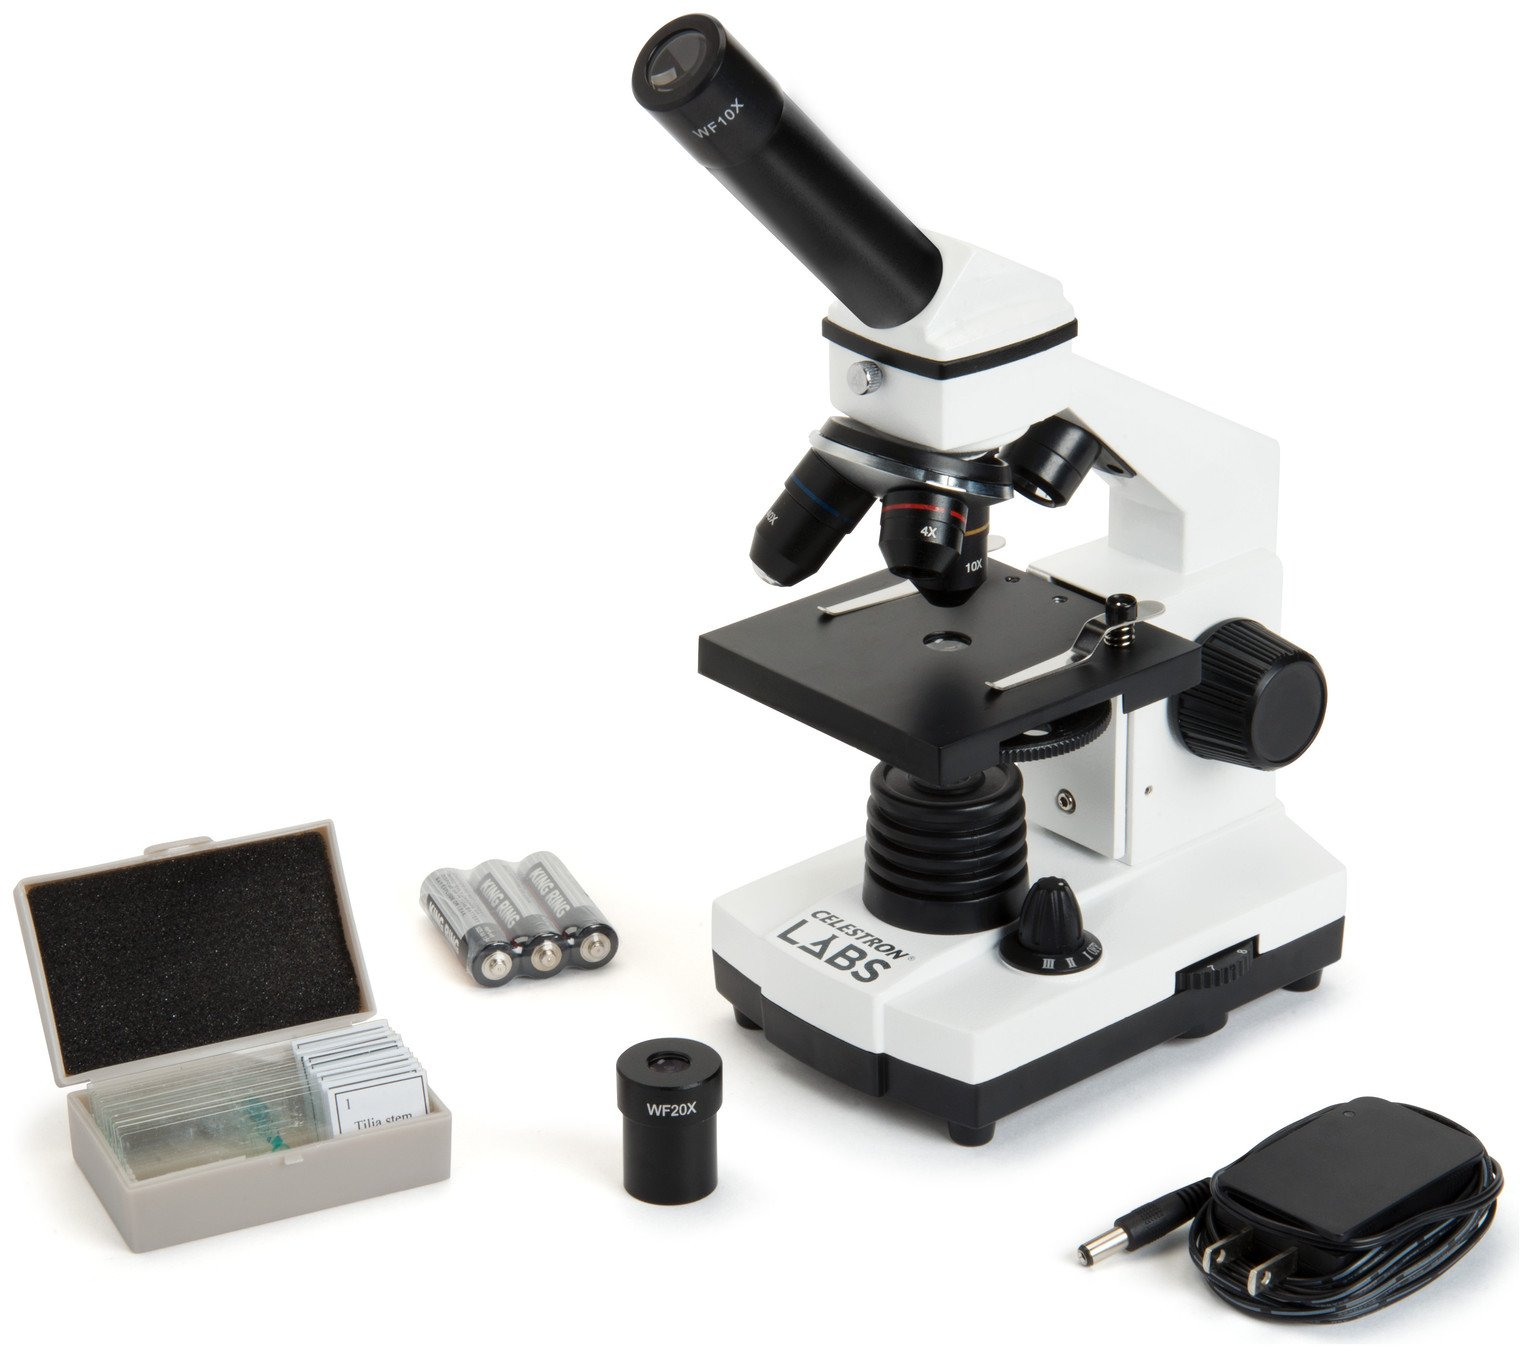 Image of Celestron CM800 Compound Microscope